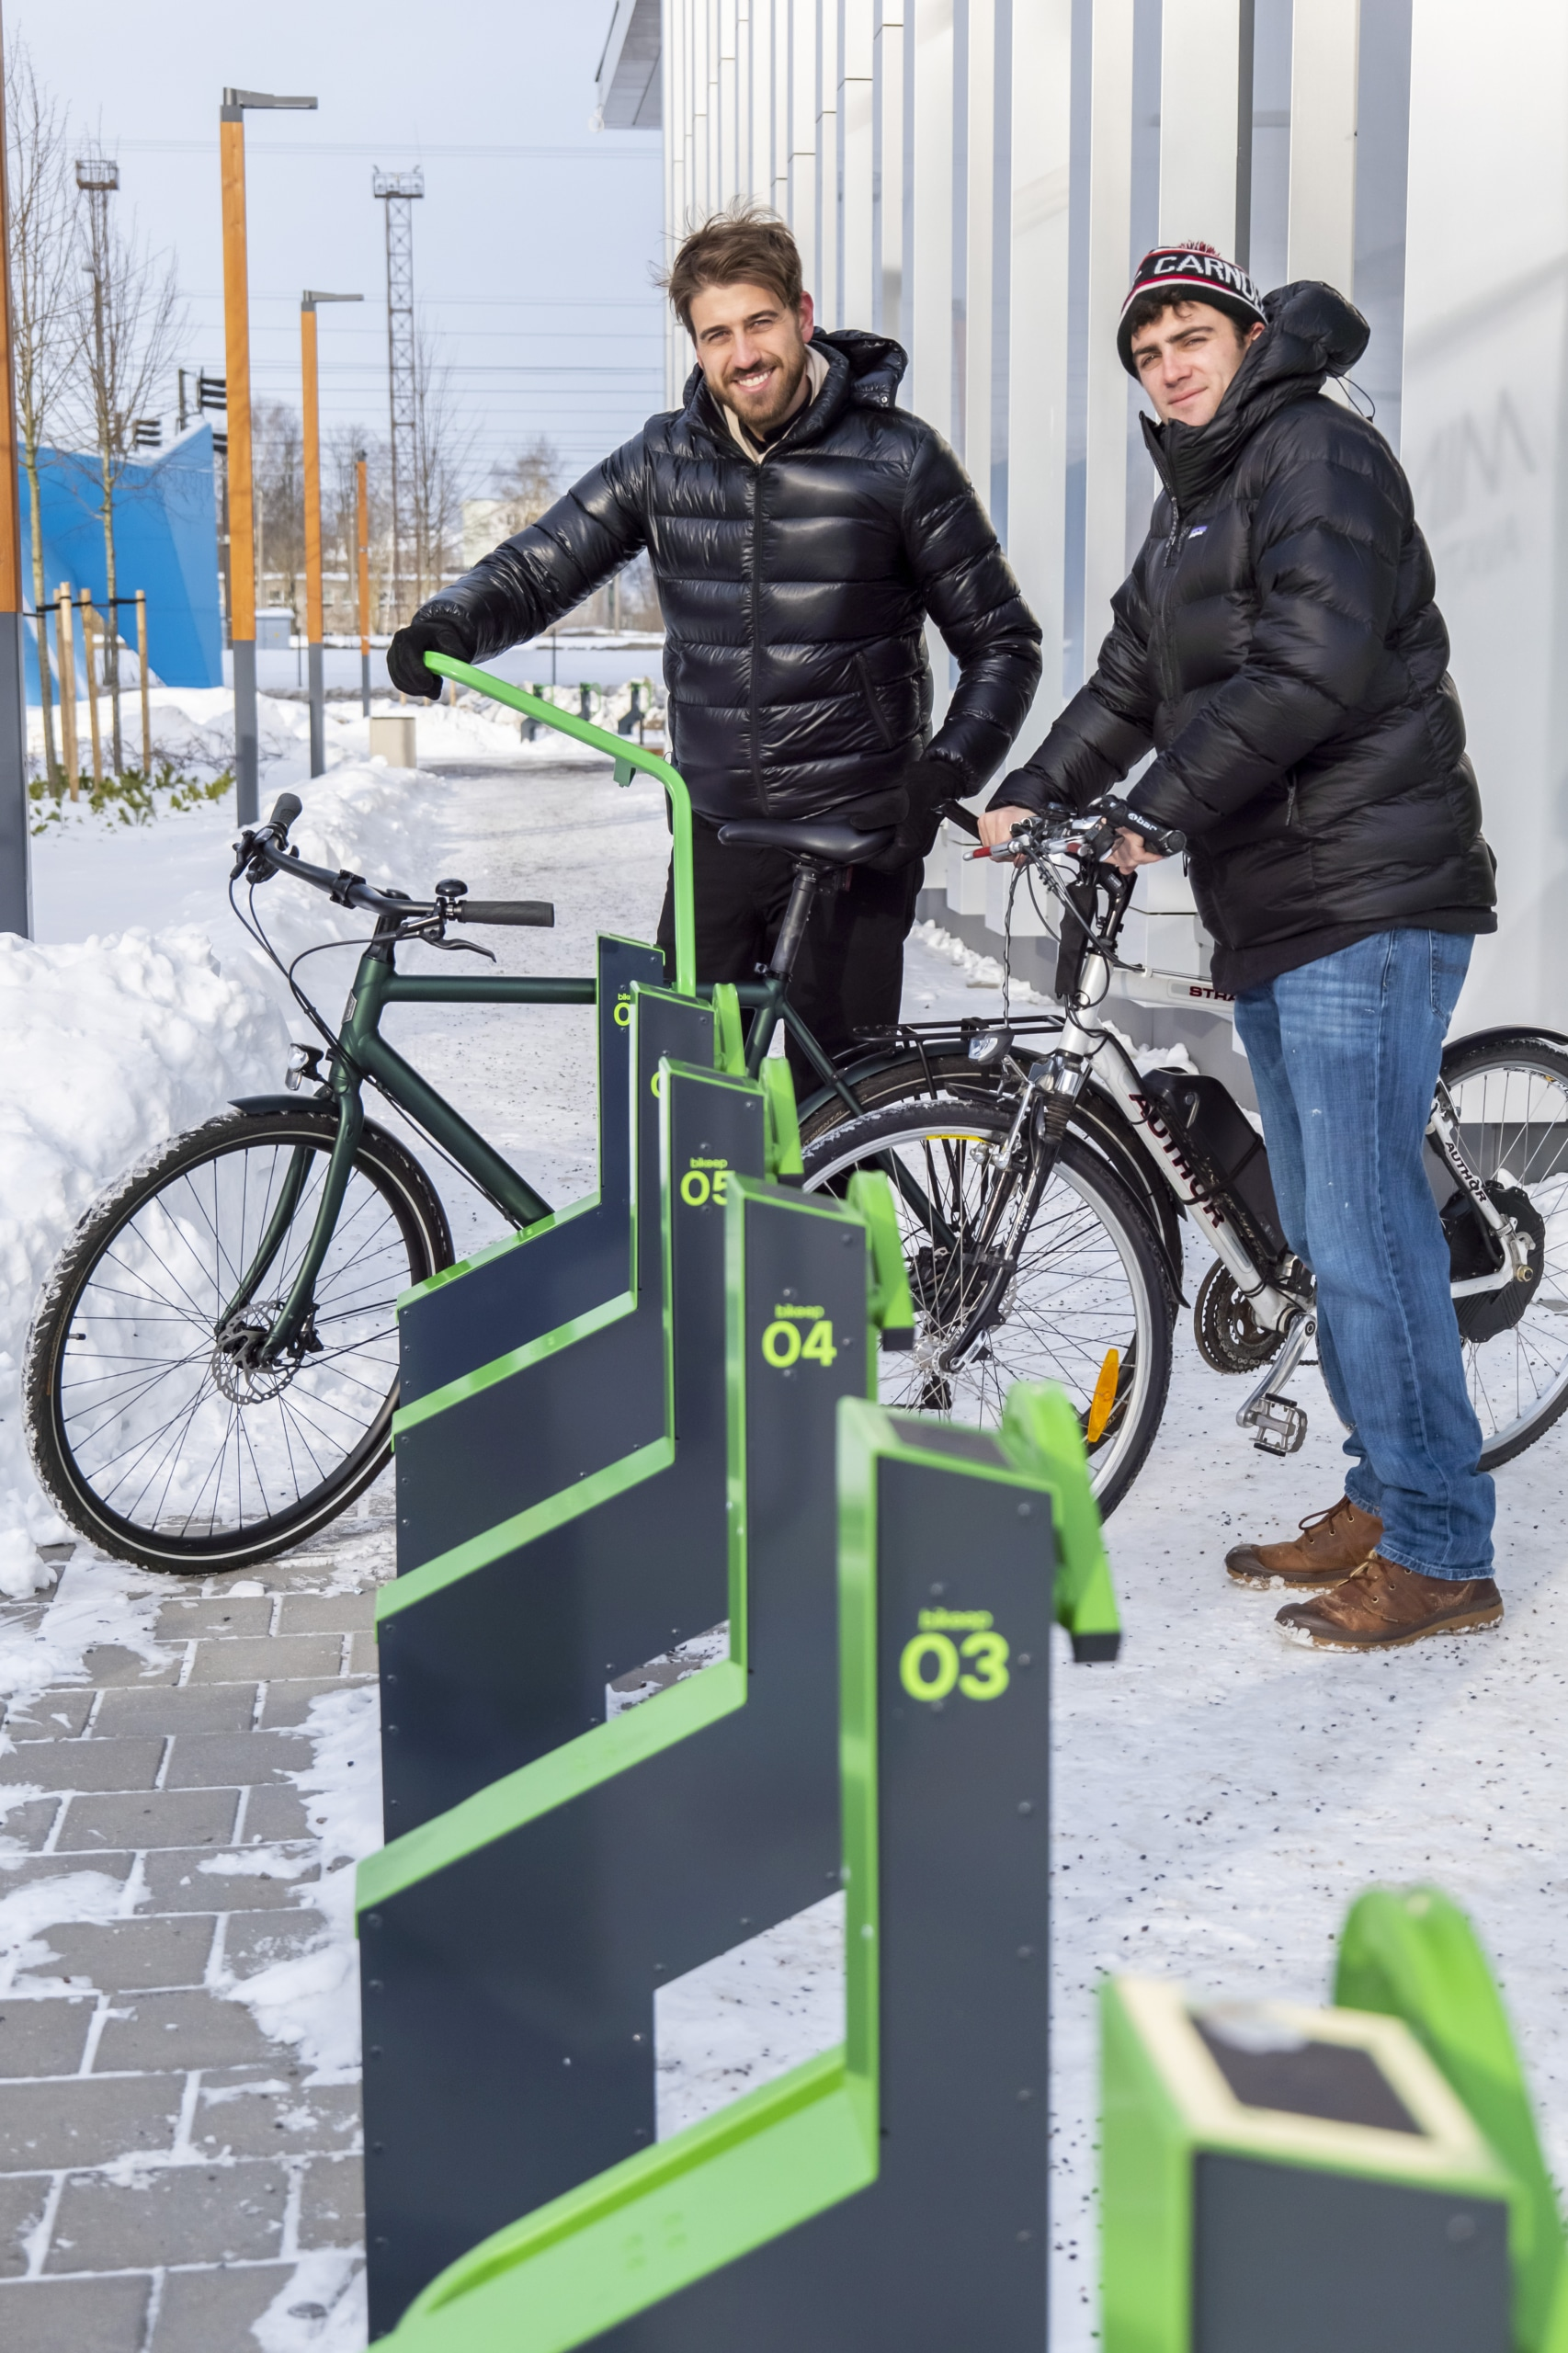 Electricity + Bicycles? The Future of Urban Mobility